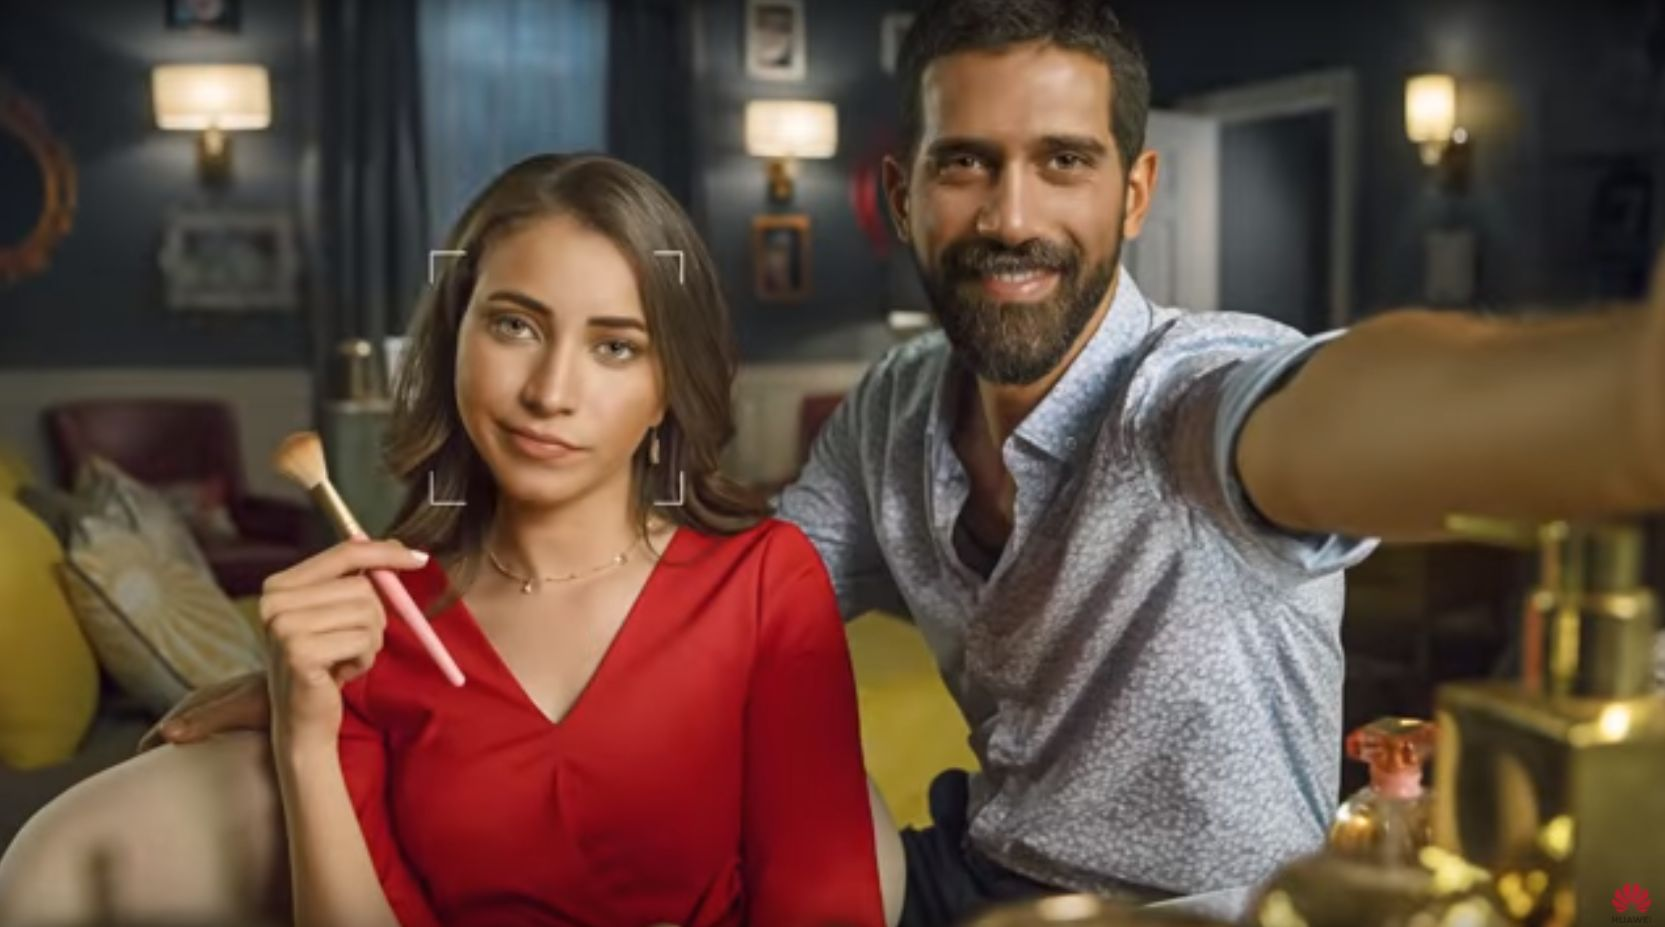 Selfie in Huawei Nova 3 ad shot with DSLR | The Star Online